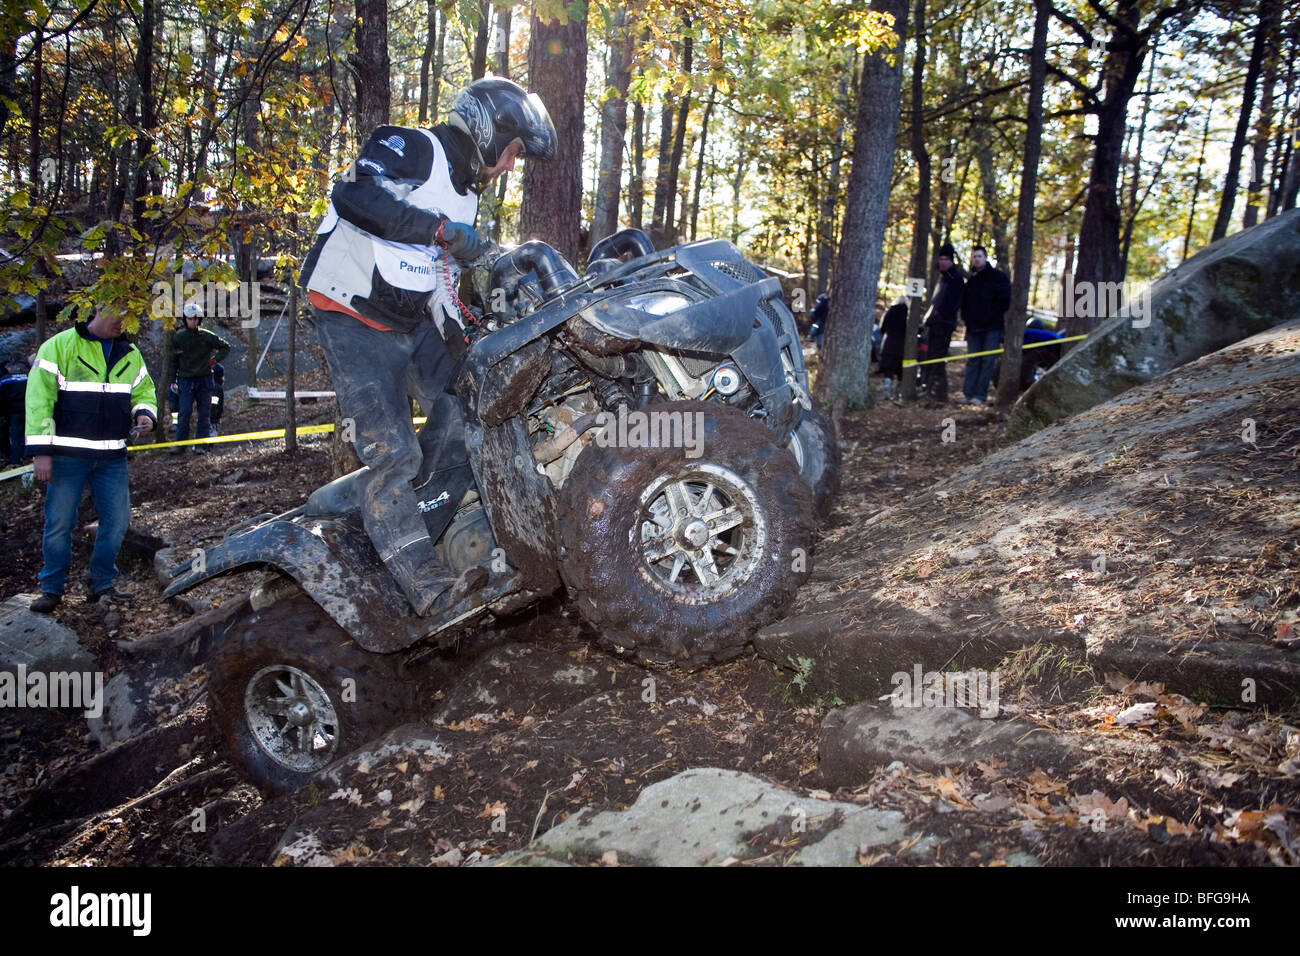 Man rides all-terrain vehicle (ATV) on steep uphill terrain in woods. Trial off-road biking. Sweden. - Stock Image